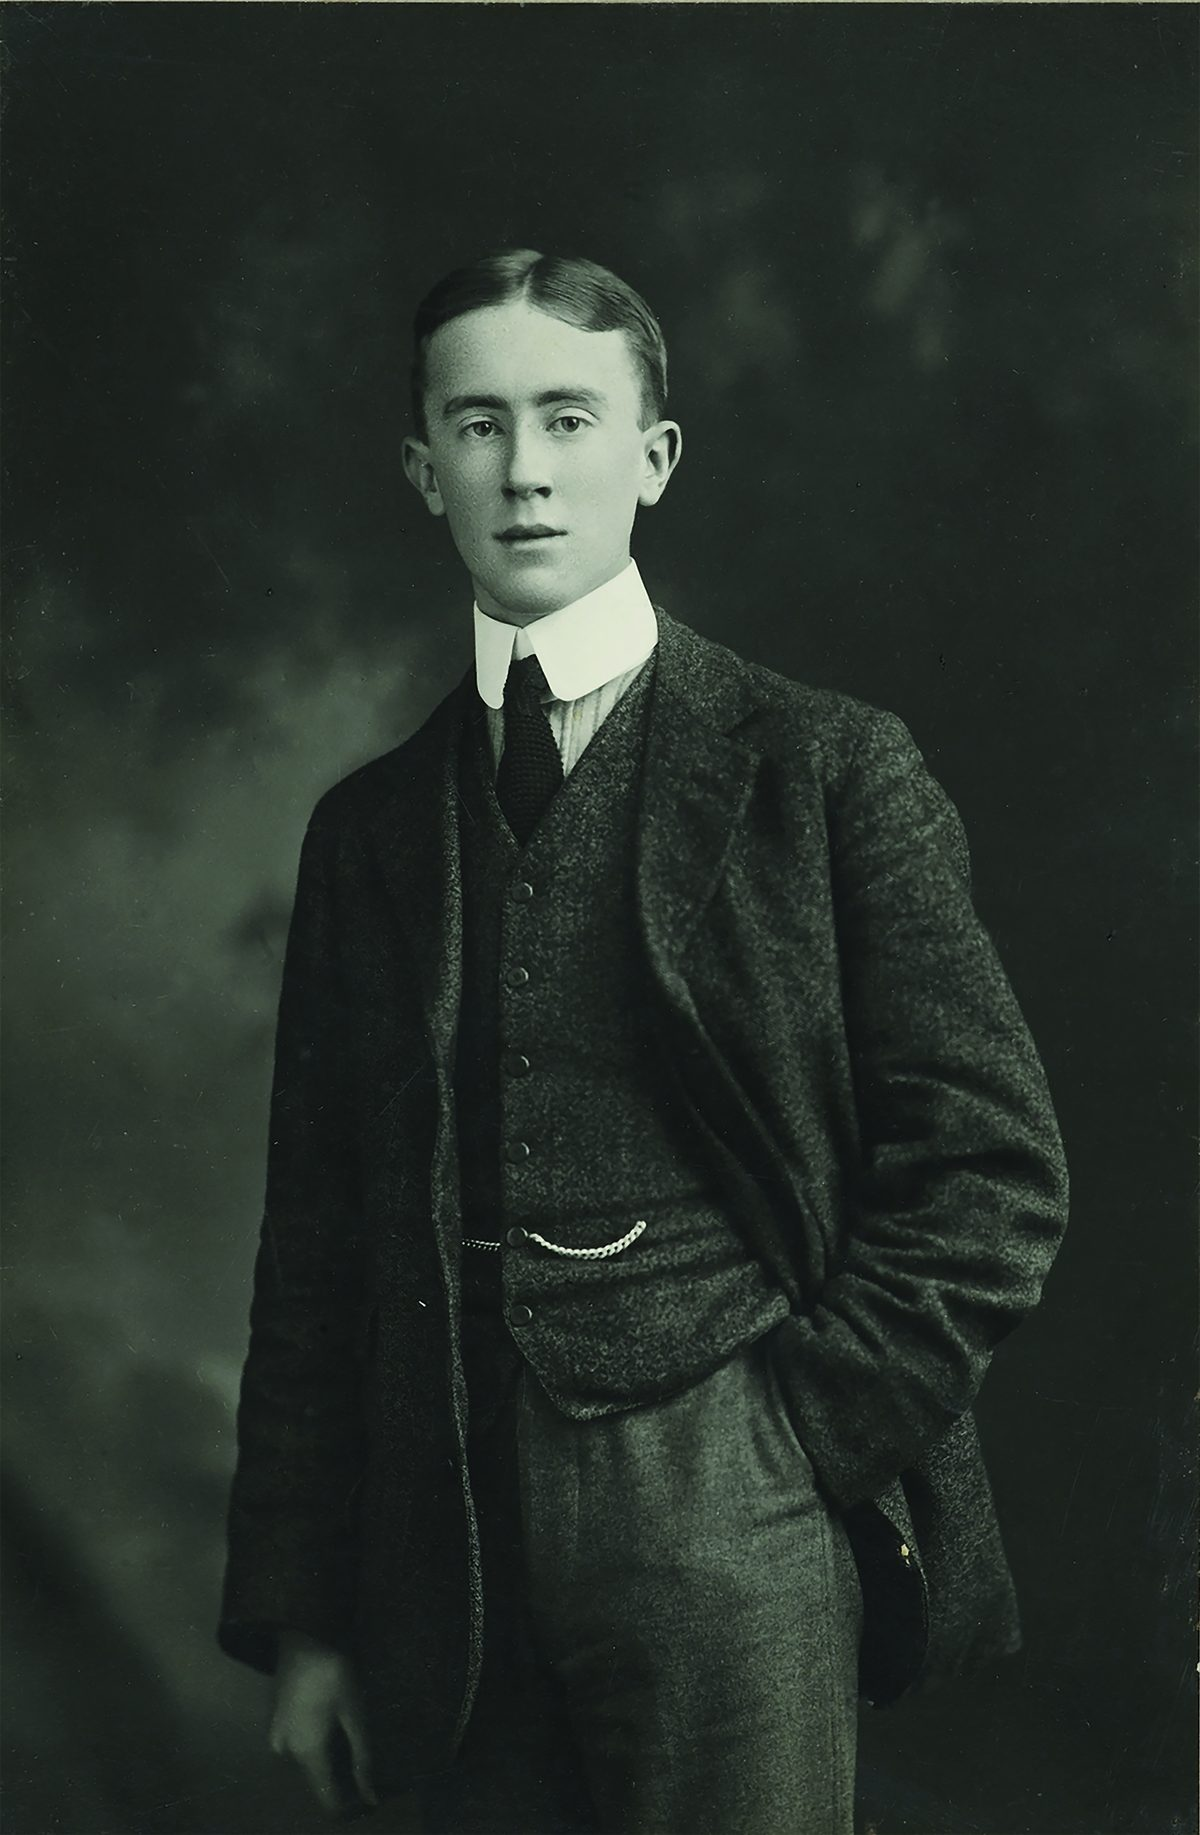 Tolkien as a young man